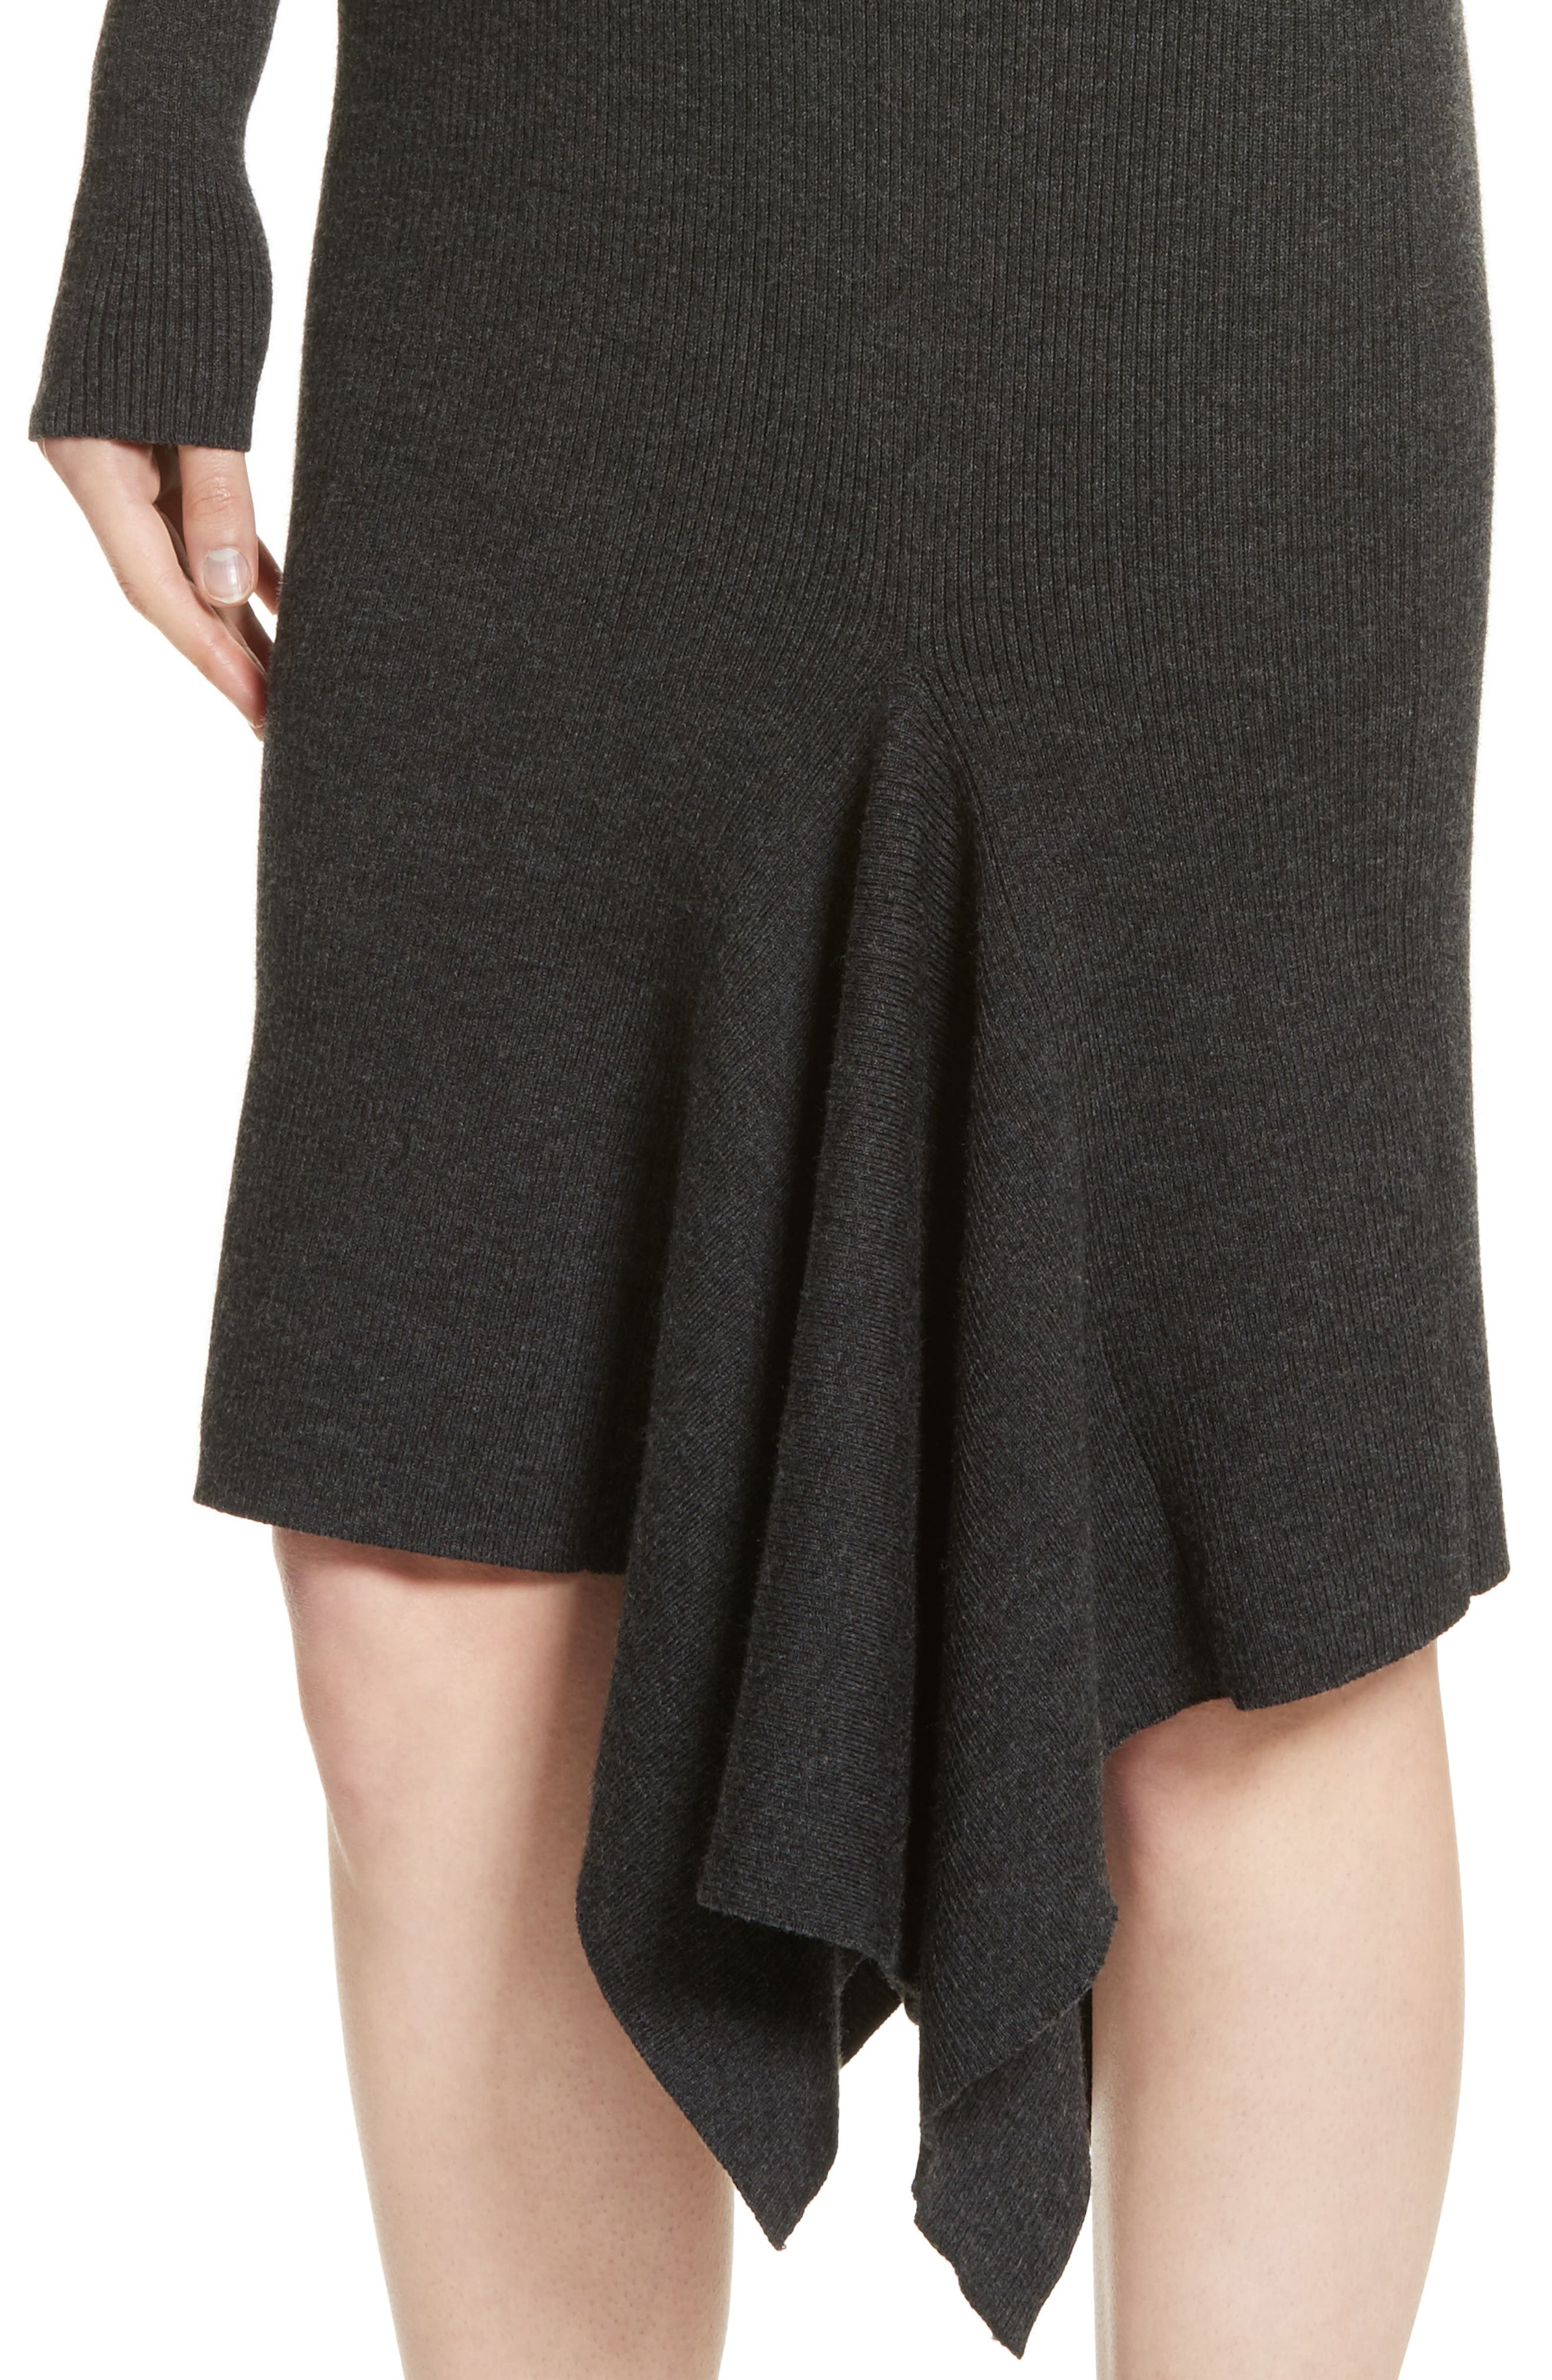 Alternate Image 4  - Michael Kors Merino Wool Blend Handkerchief Hem Dress